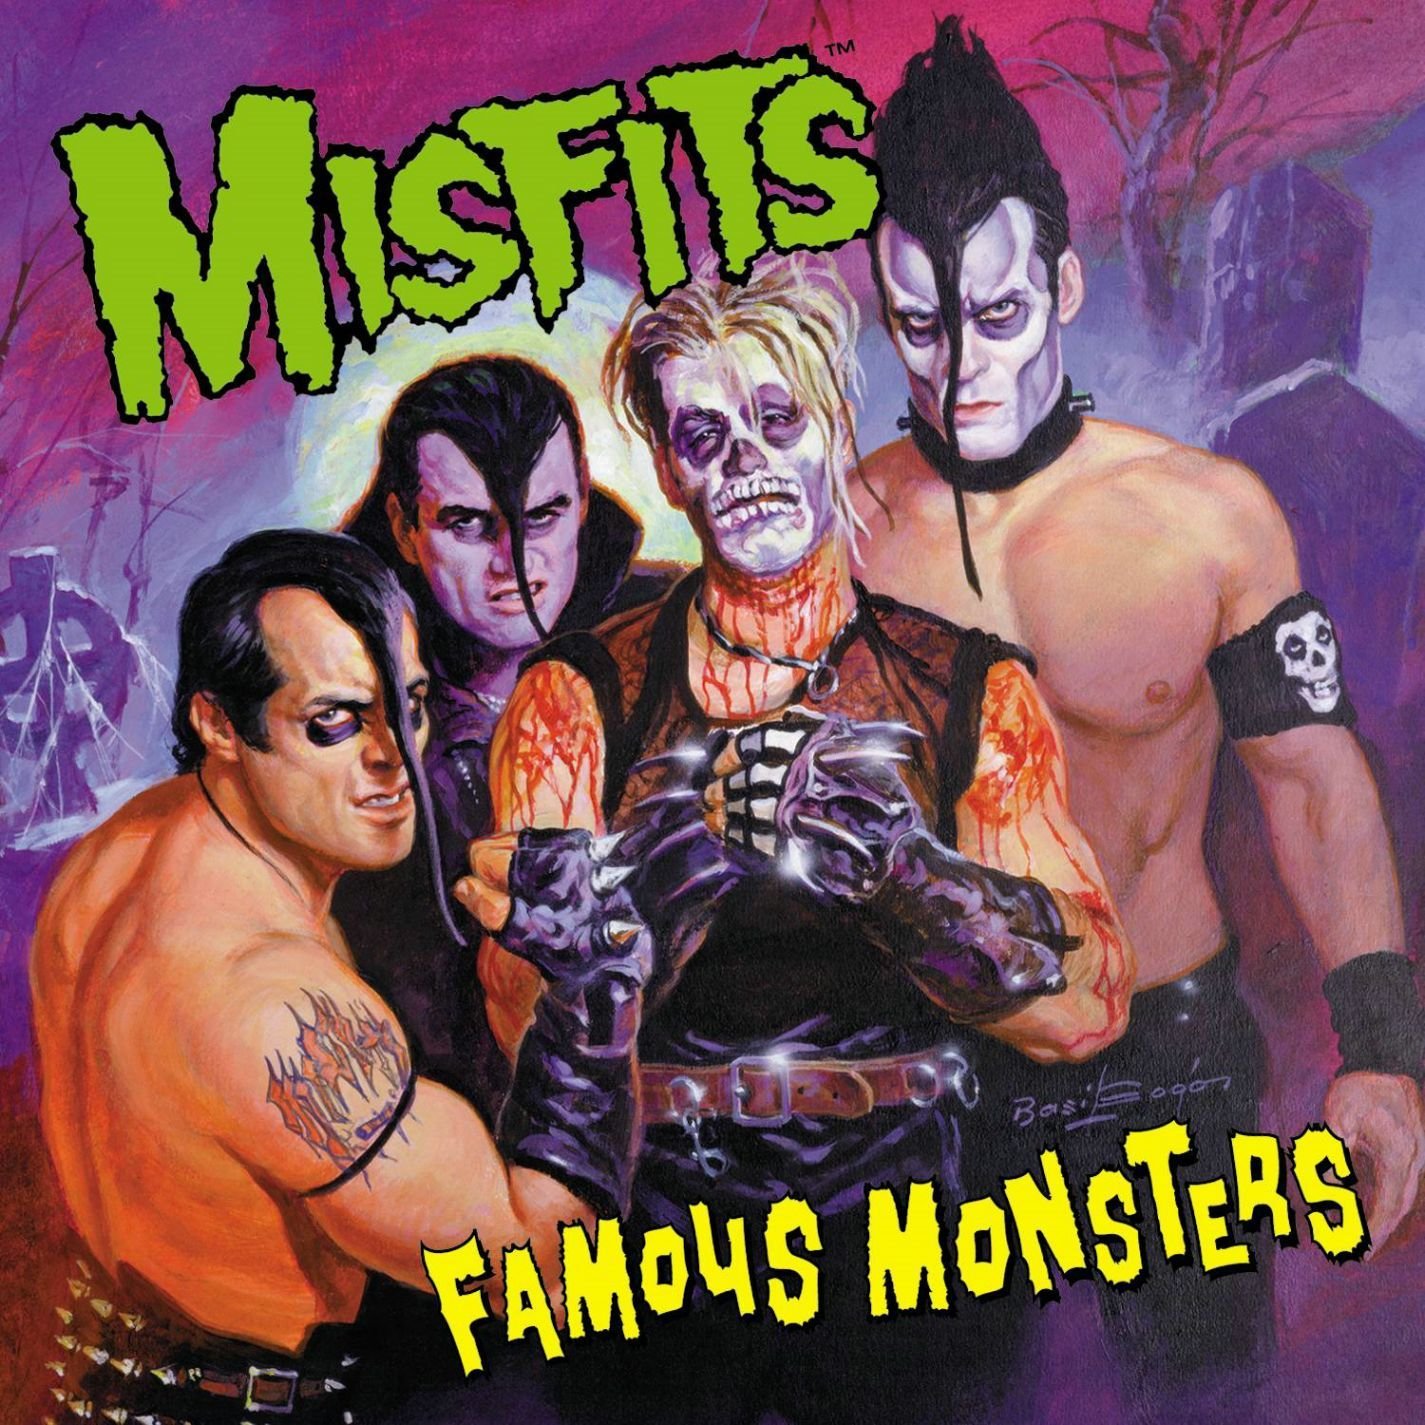 Misfits – Famous Monsters (LP of the Week) | Horror and Music covers